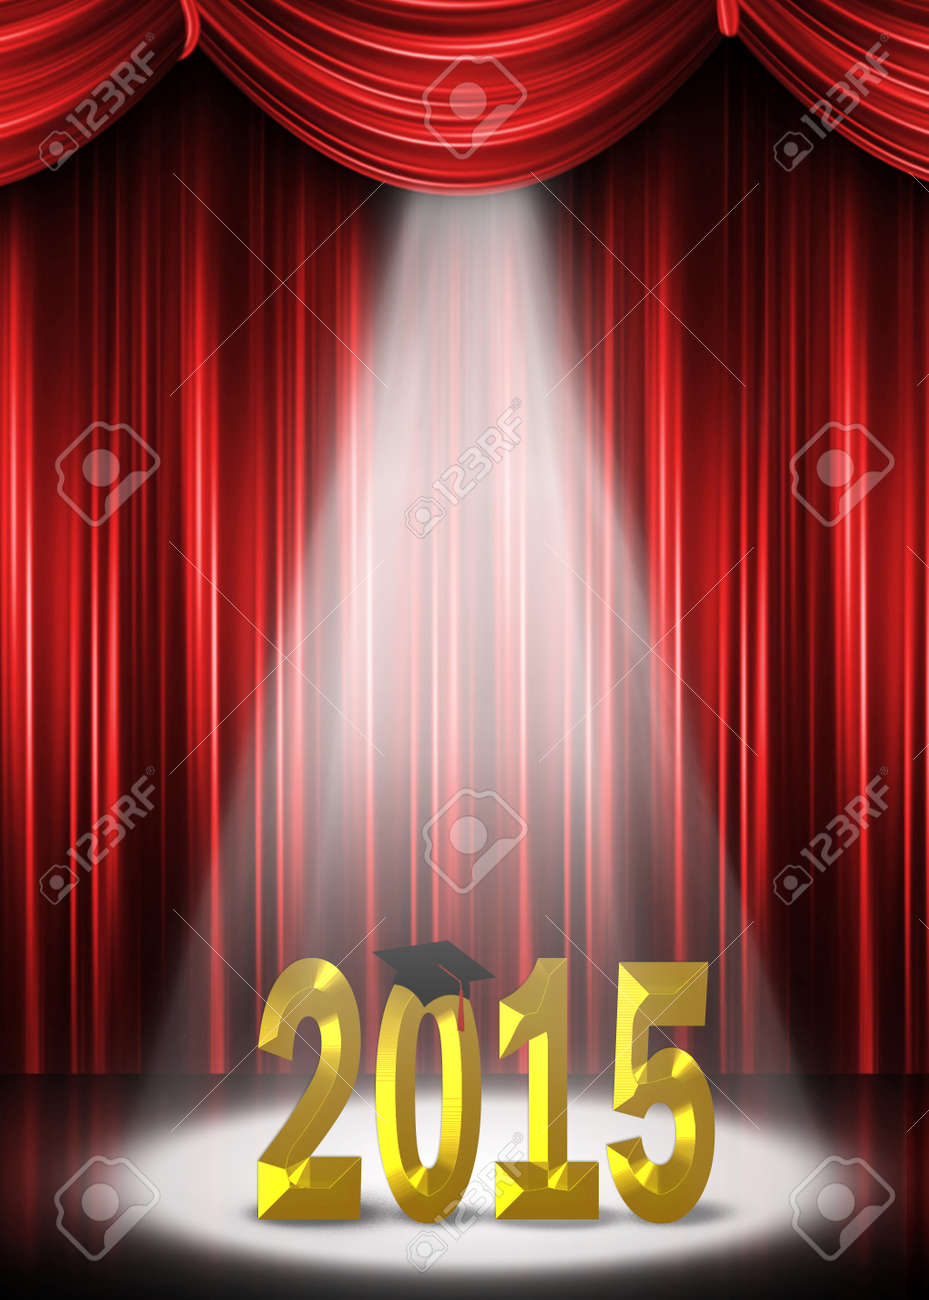 Red curtain spotlight - Graduation 2015 In The Spotlight With Red Curtain Backdrop Stock Photo 33379203